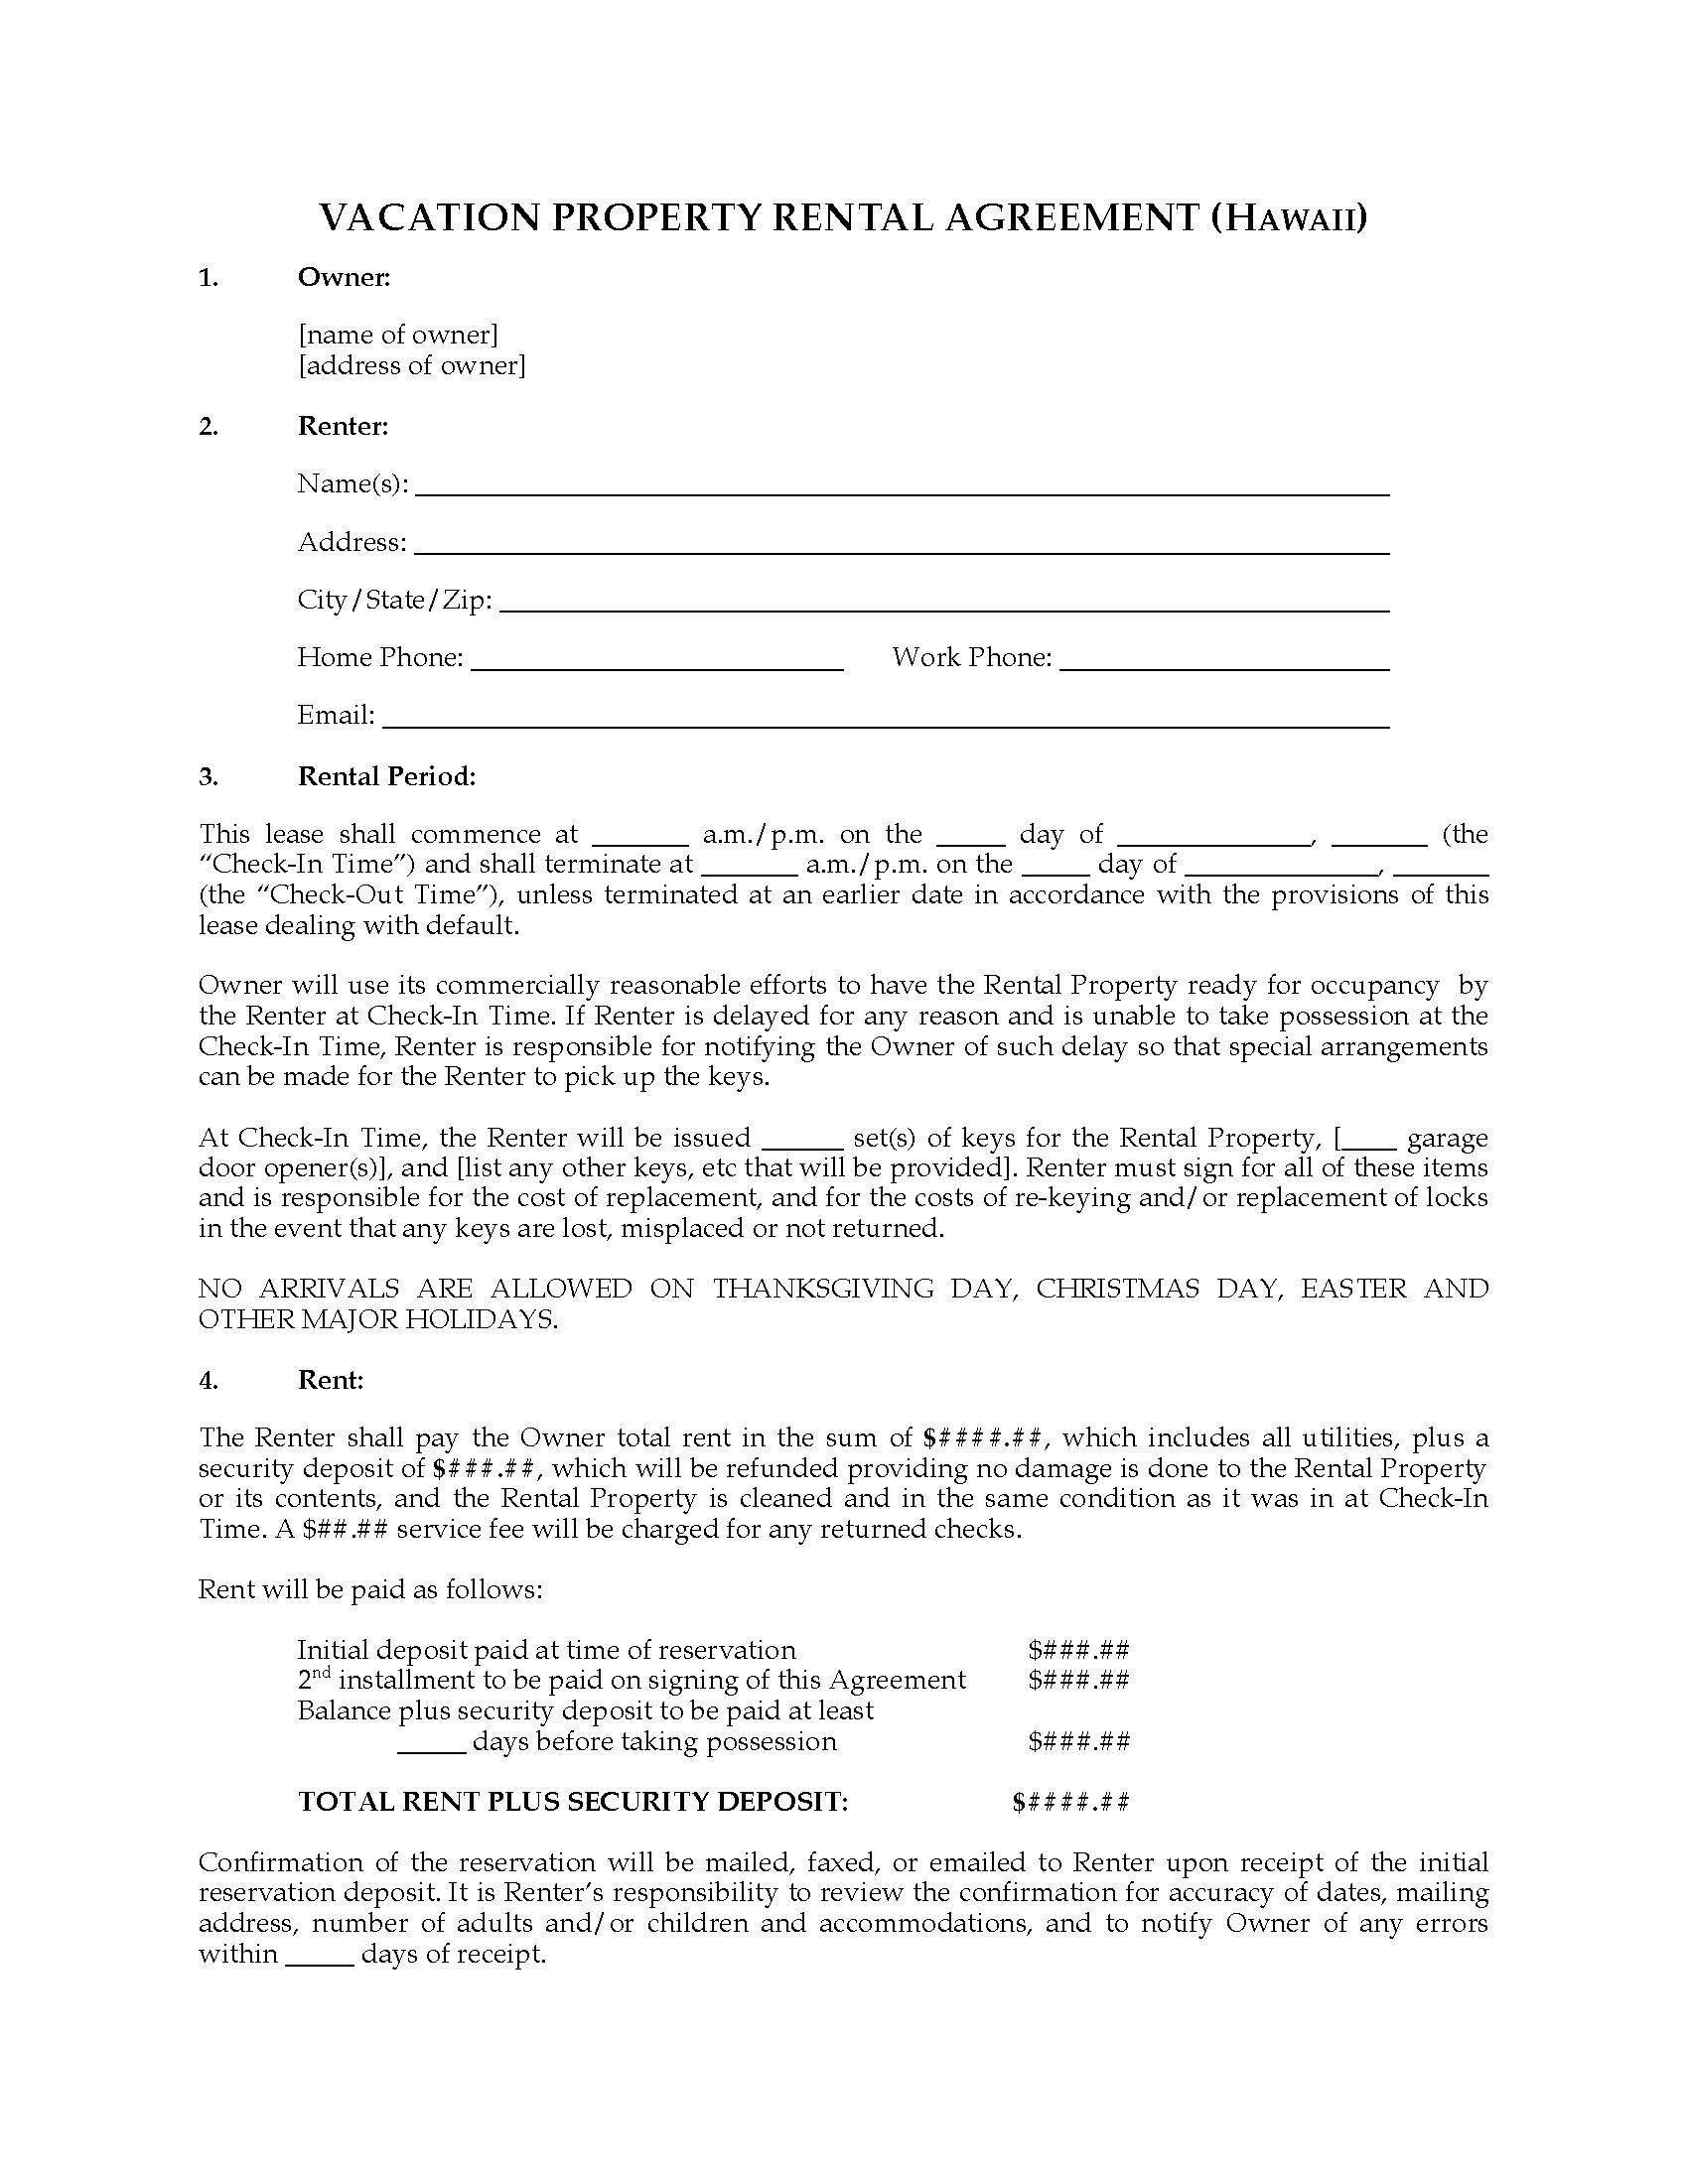 Hawaii Vacation Property Rental Agreement Legal Forms And Business Templates Megadox Com Hawaii Residential Lease Agreement Form